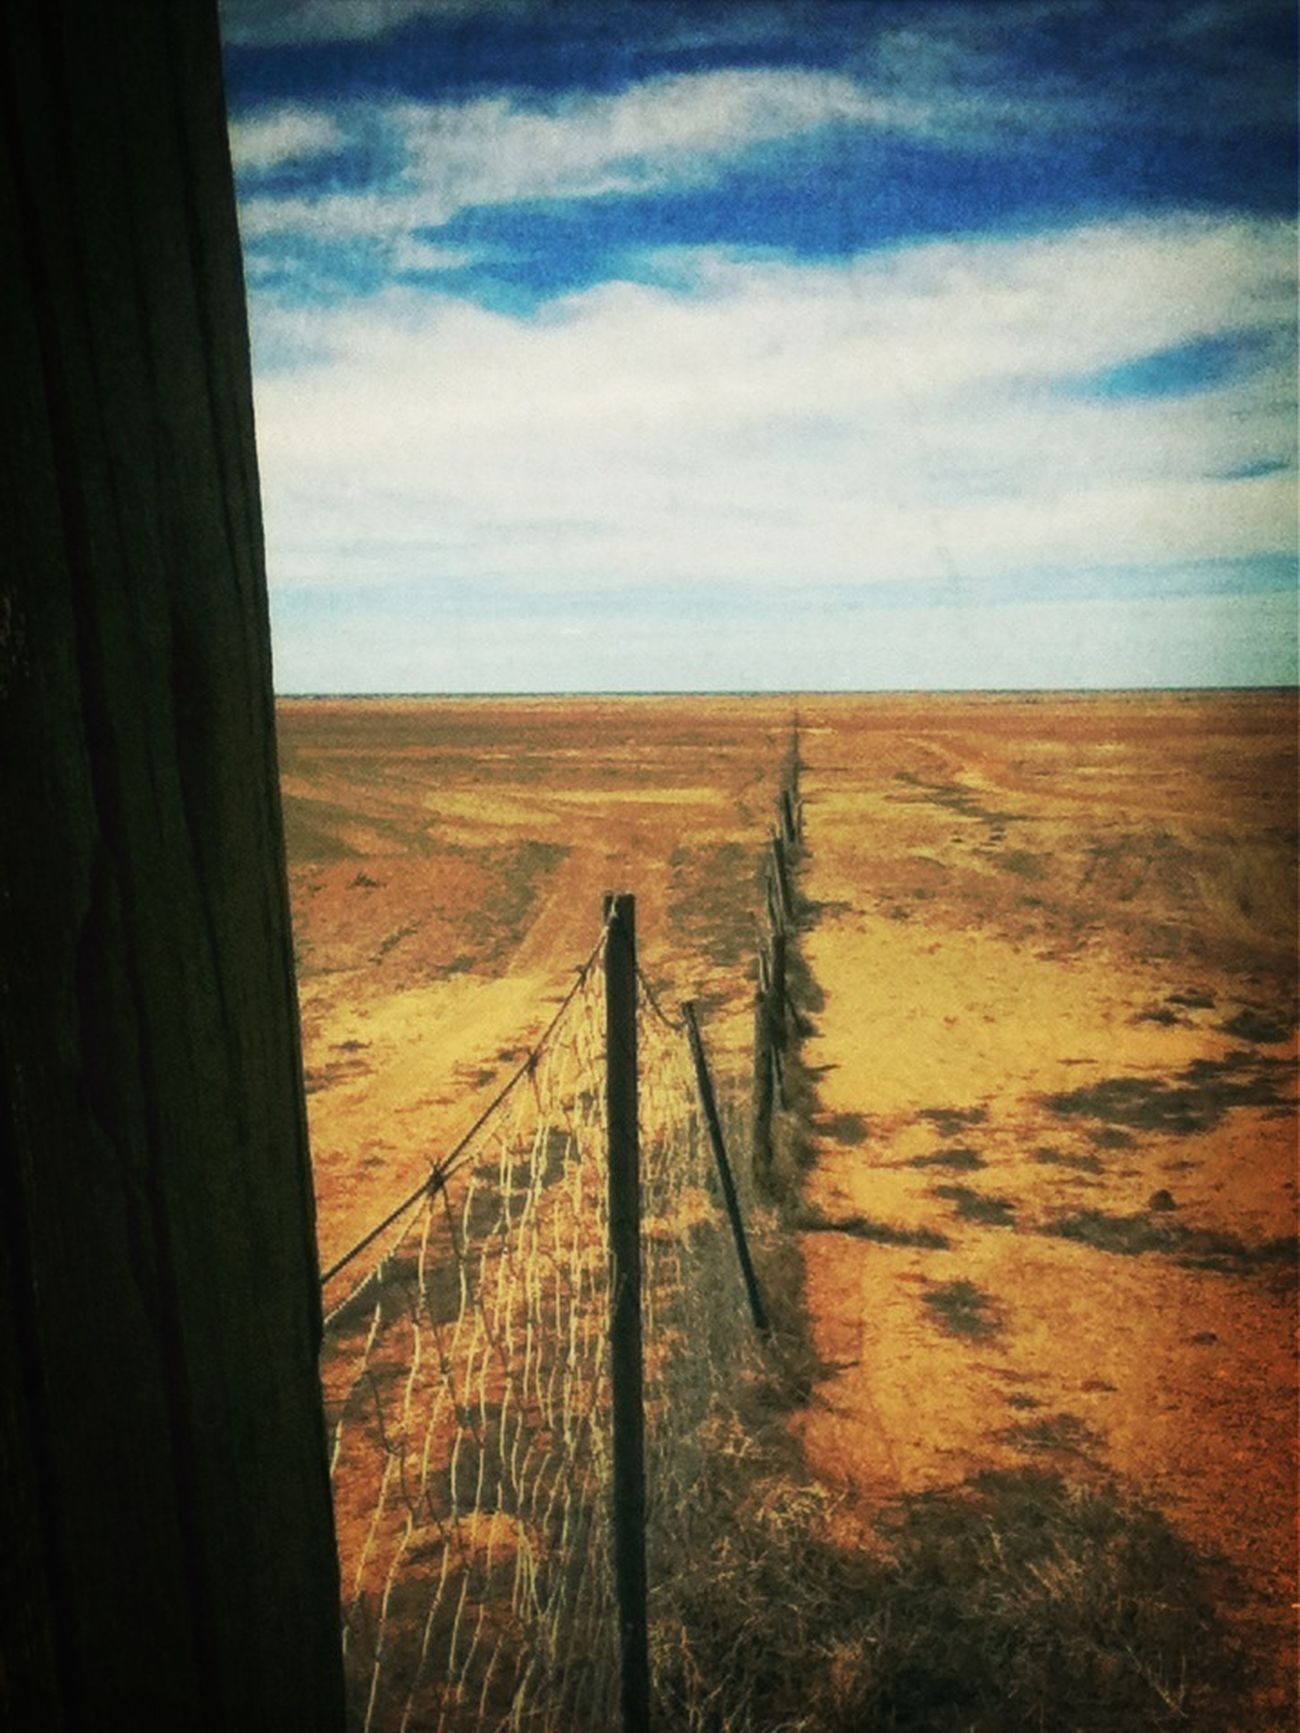 The Rabbit Proof Fence